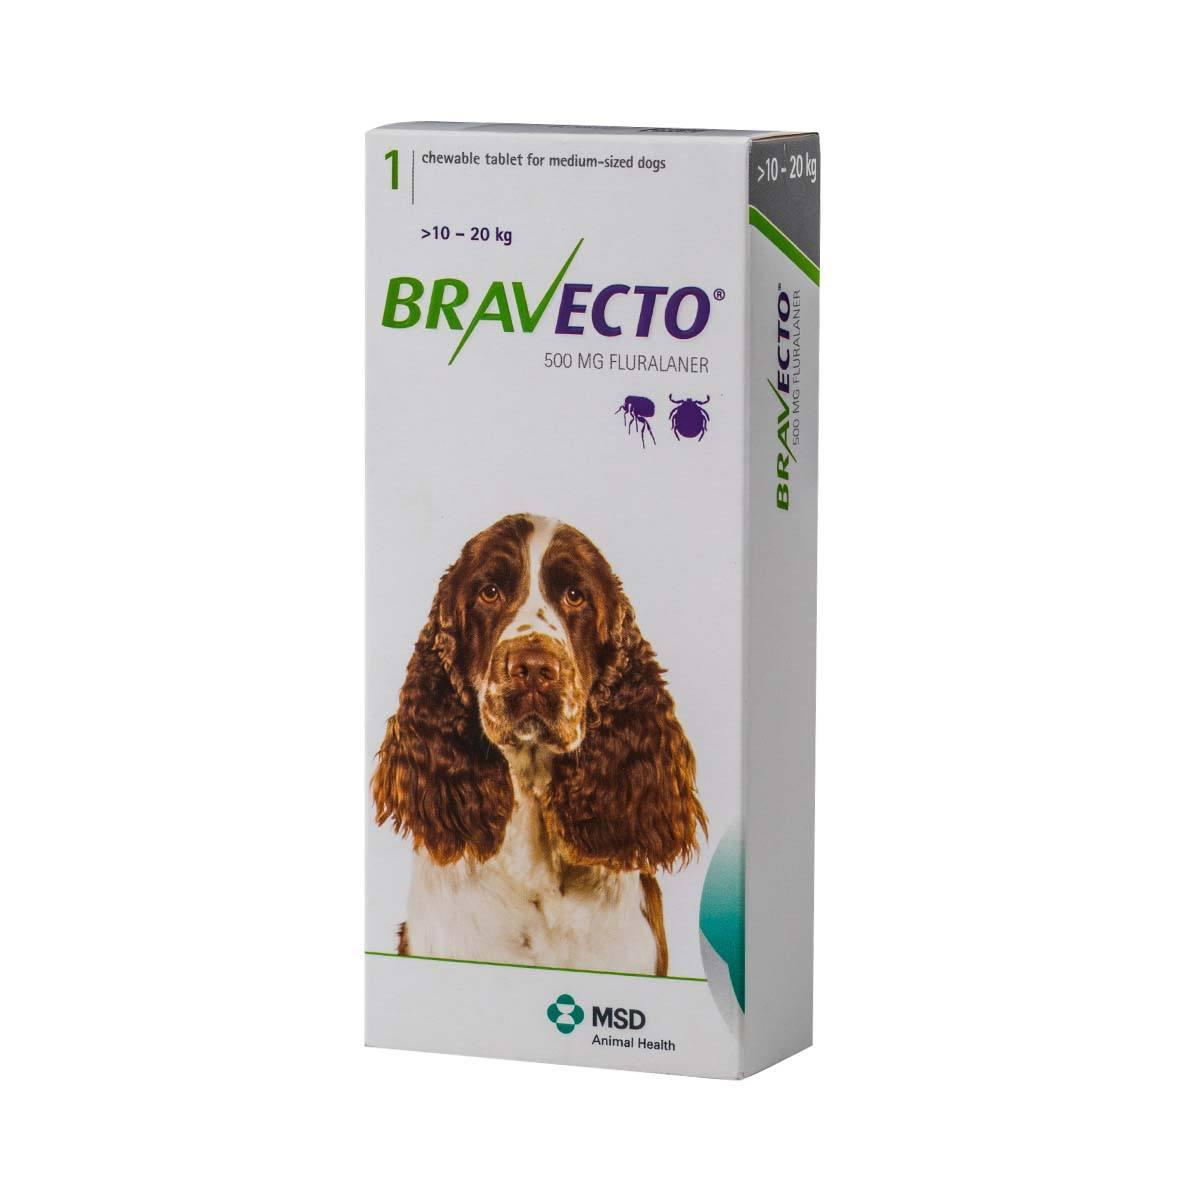 Bravecto Chew Tablet For Medium Dogs 10-20kg.